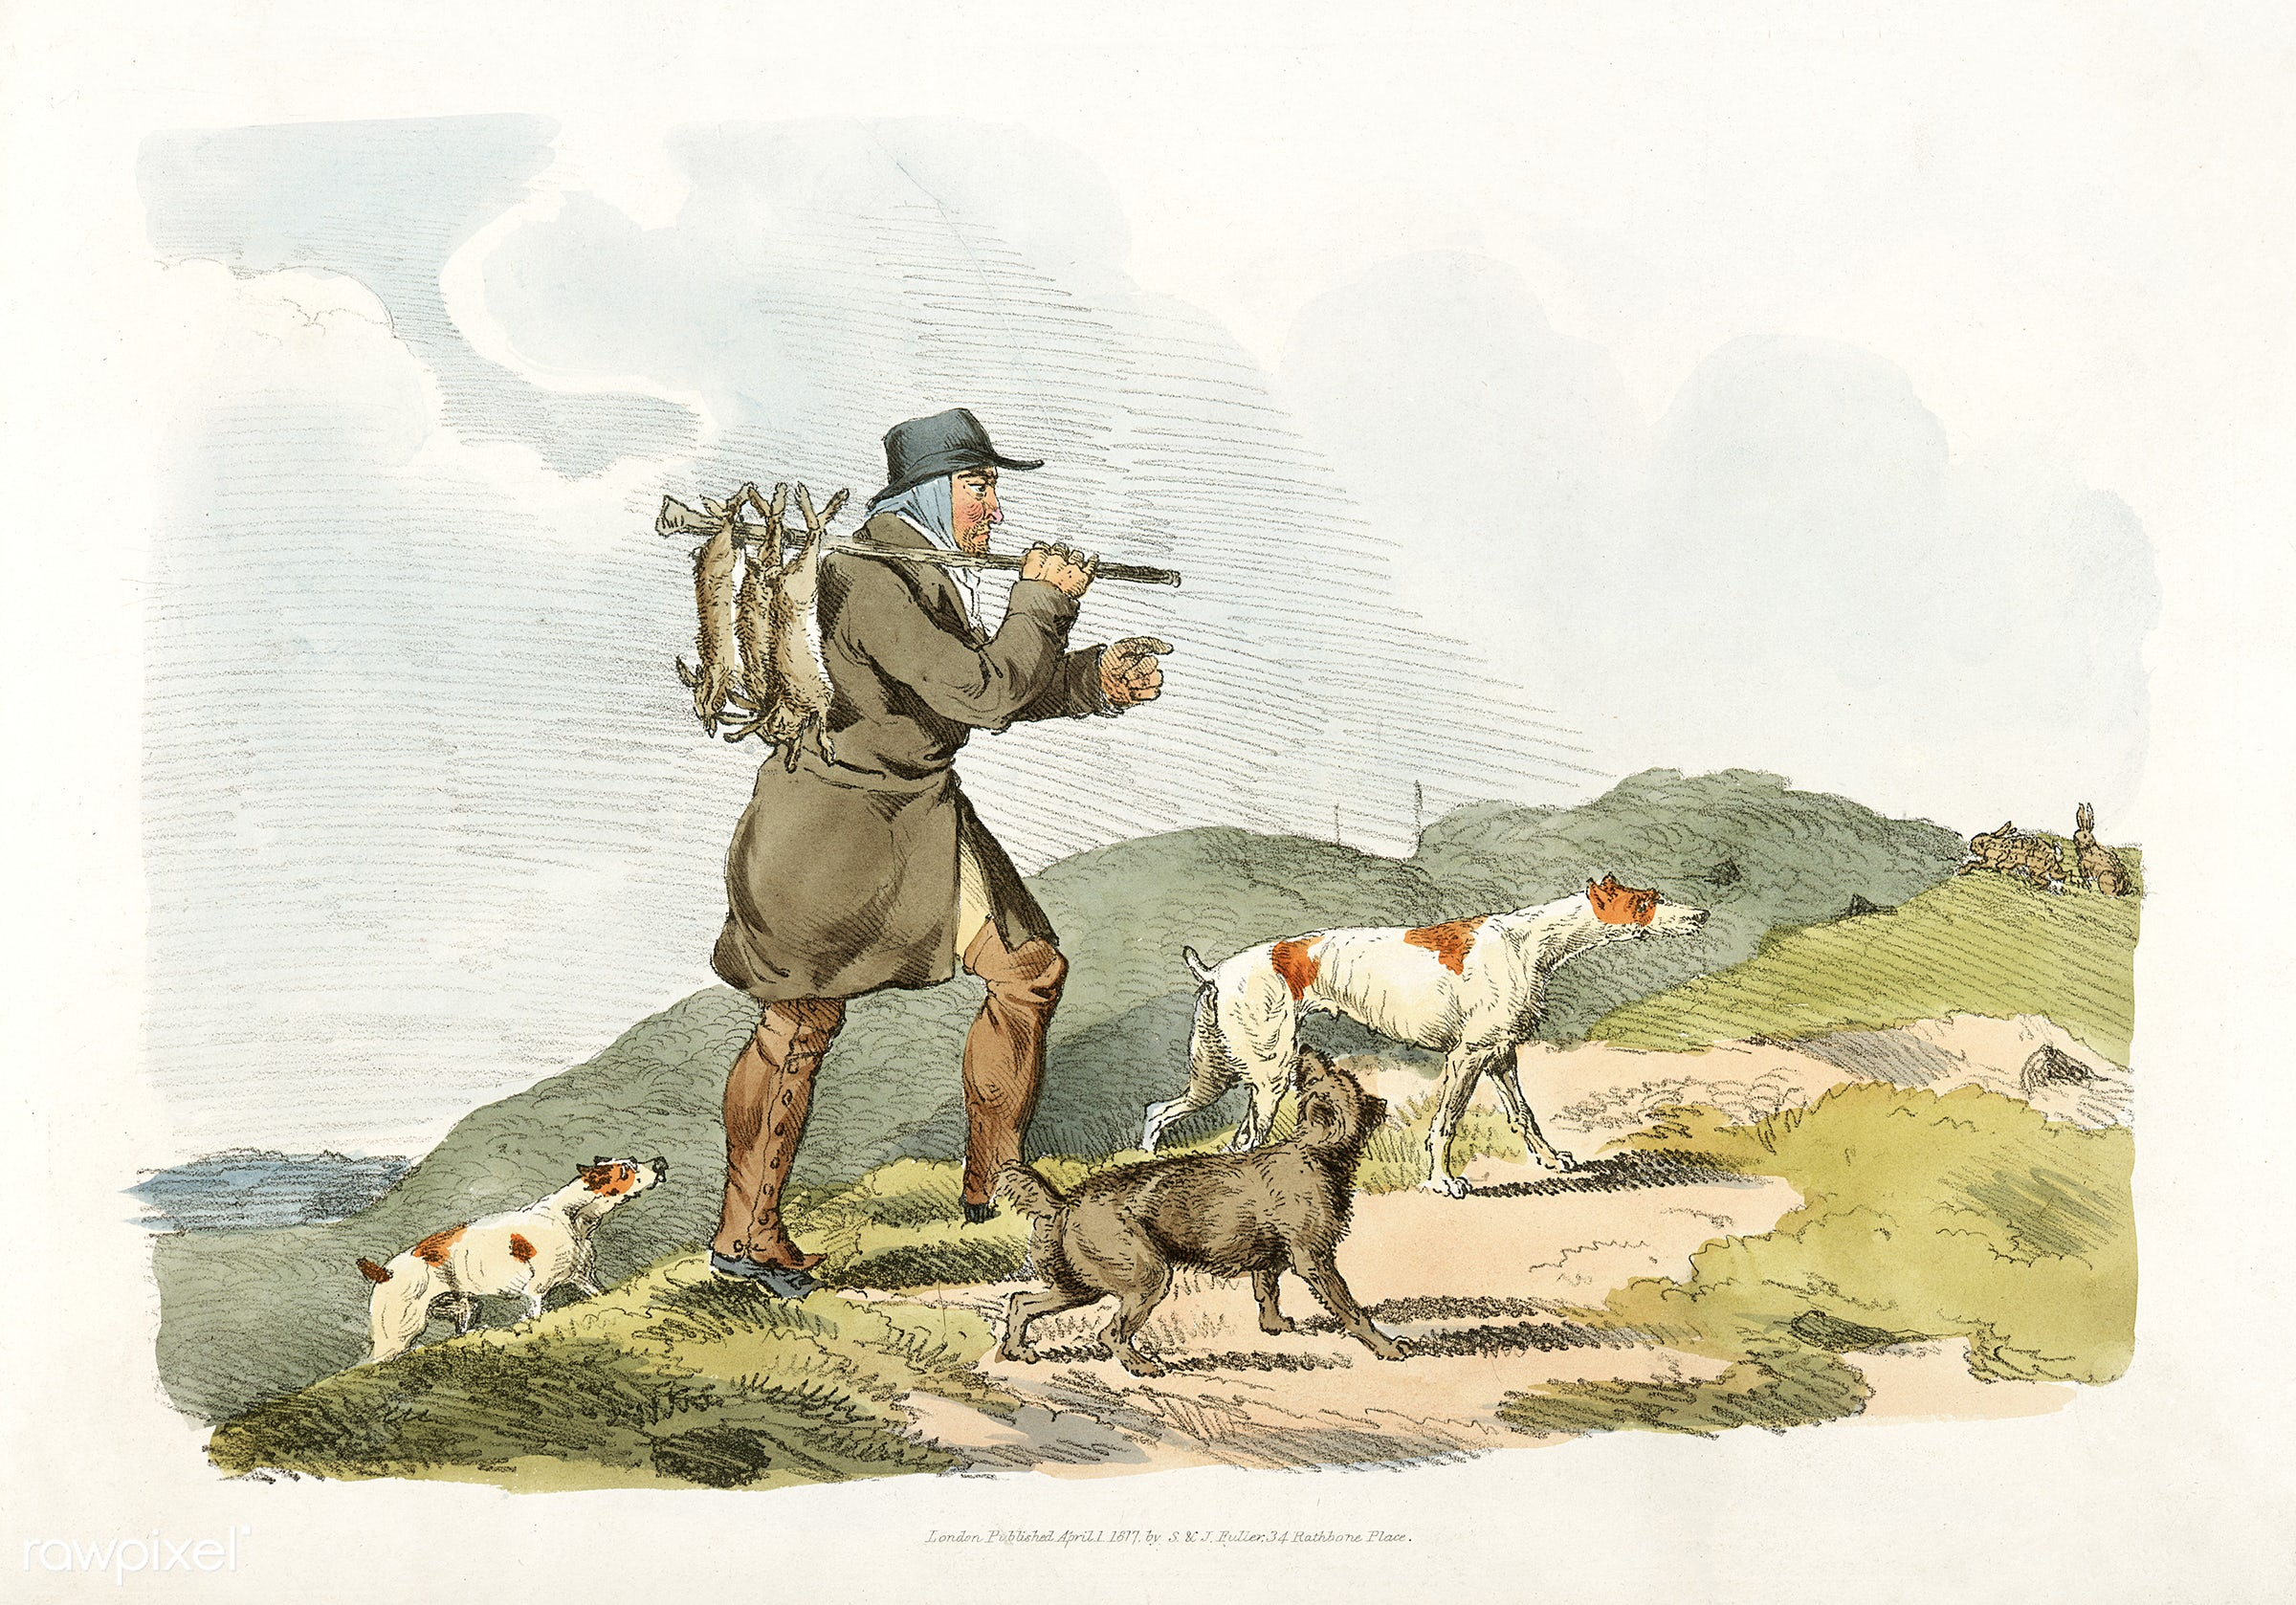 Illustration of a hunter with rabbits from Sporting Sketches (1817-1818) by Henry Alken (1784-1851). - animal, antique, cc0...